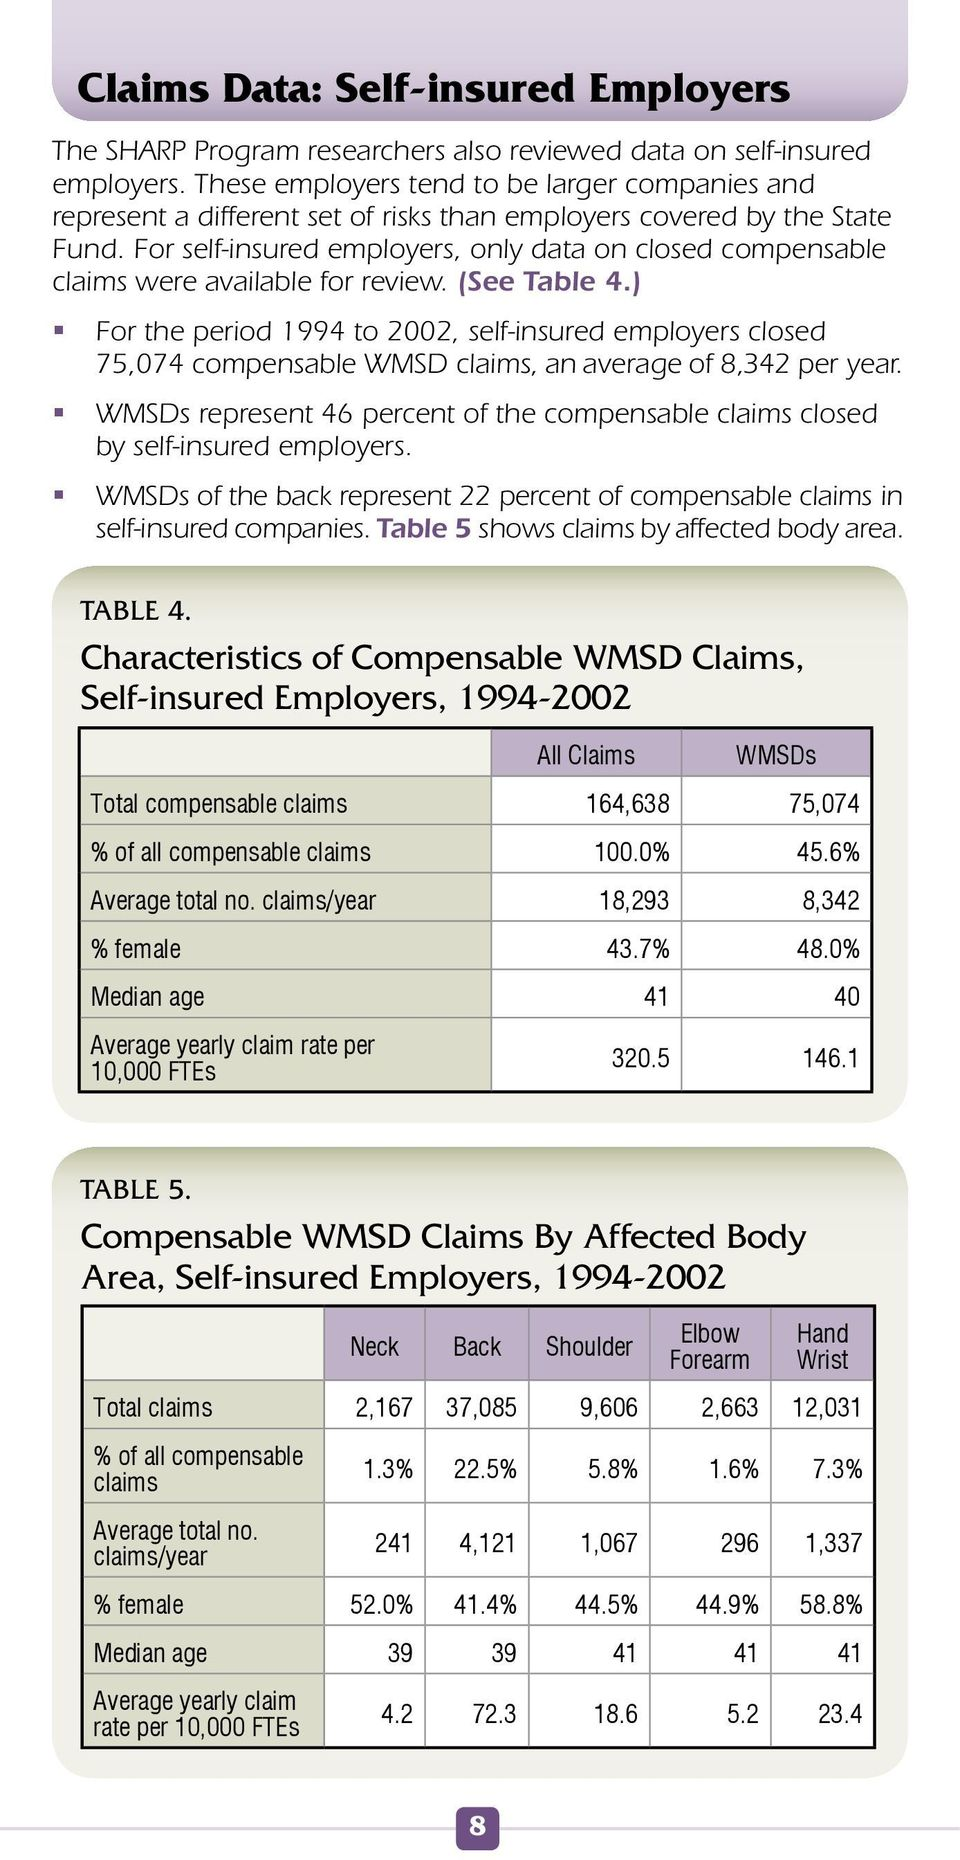 For self-insured employers, only data on closed compensable claims were available for review. (See Table 4.